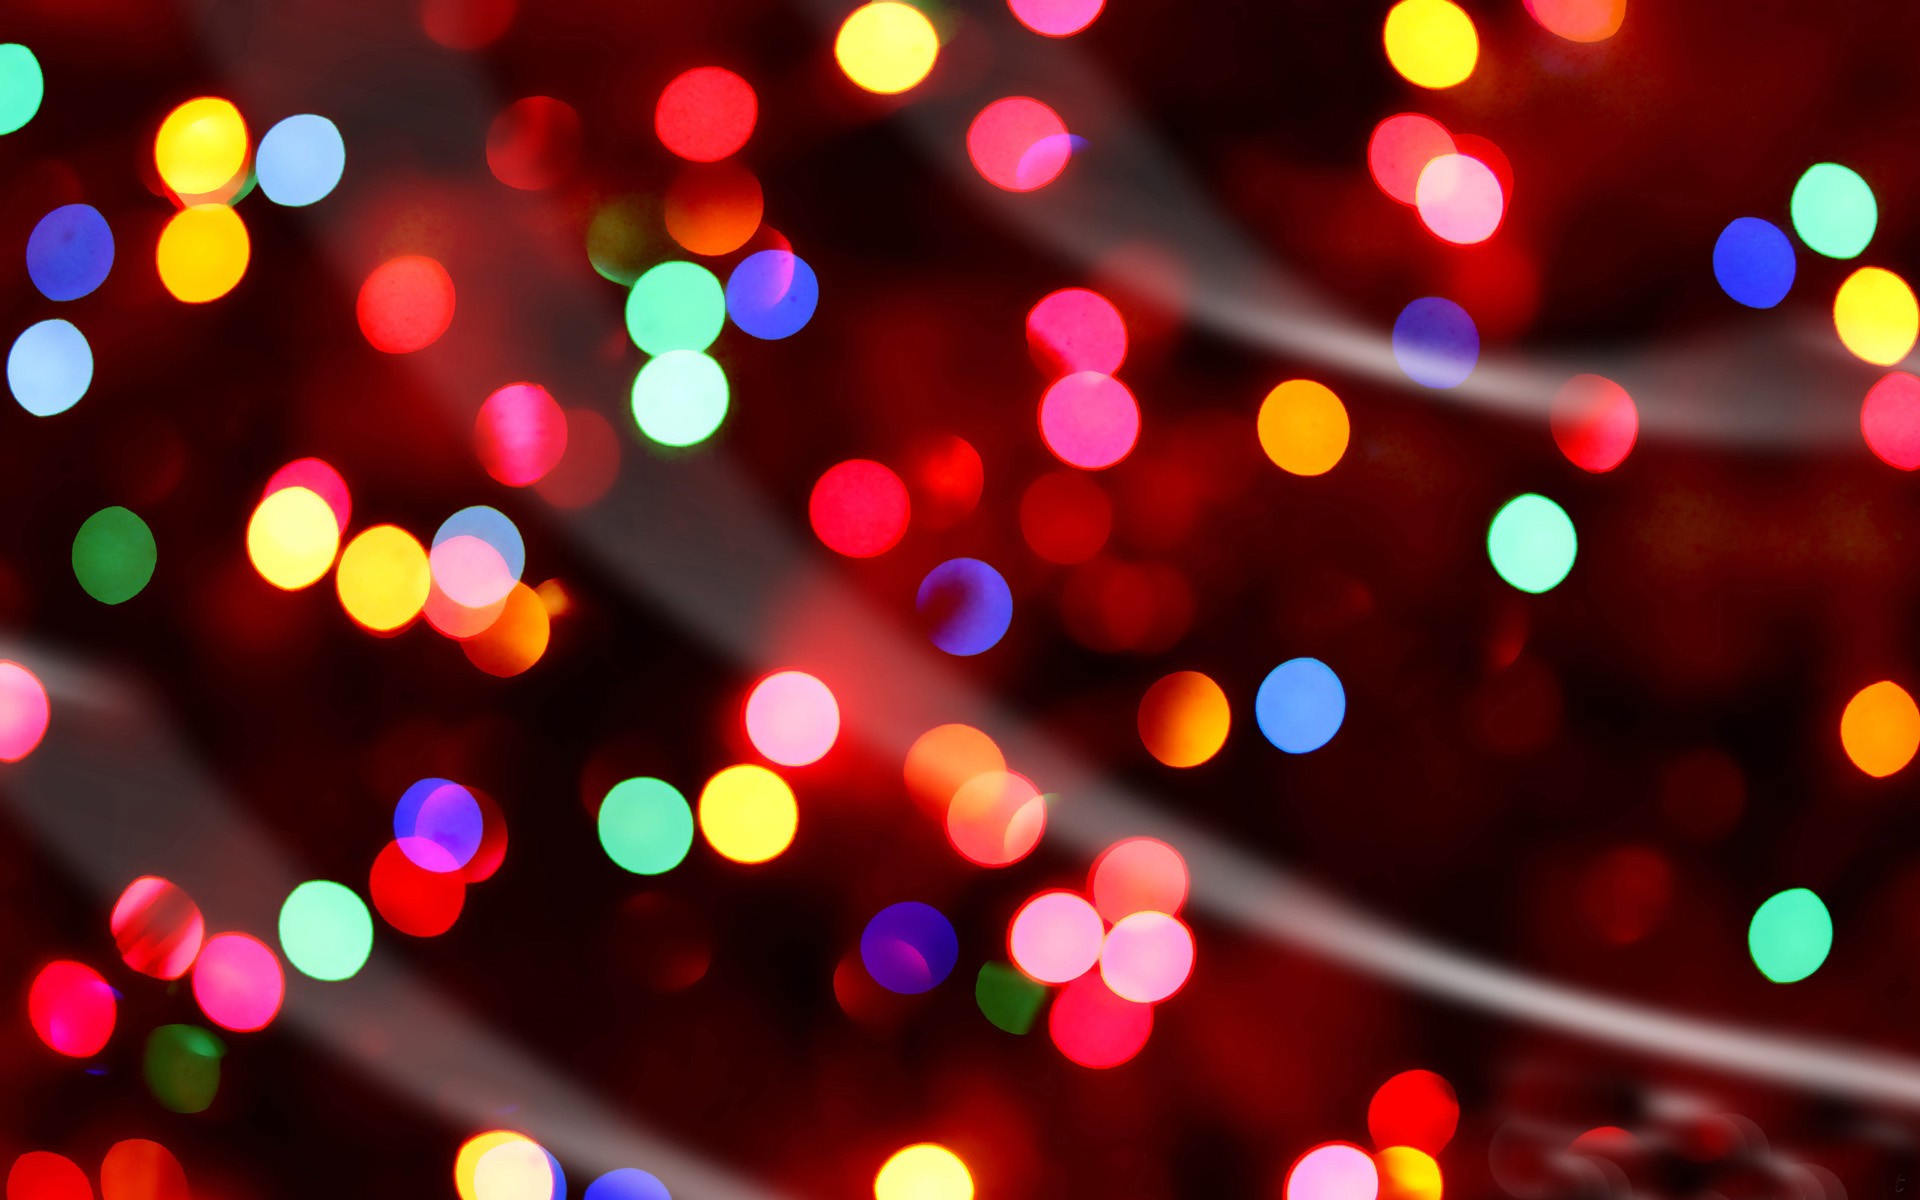 1920x1200 Amazing Christmas Lights Background For Iphone 7 Download Full